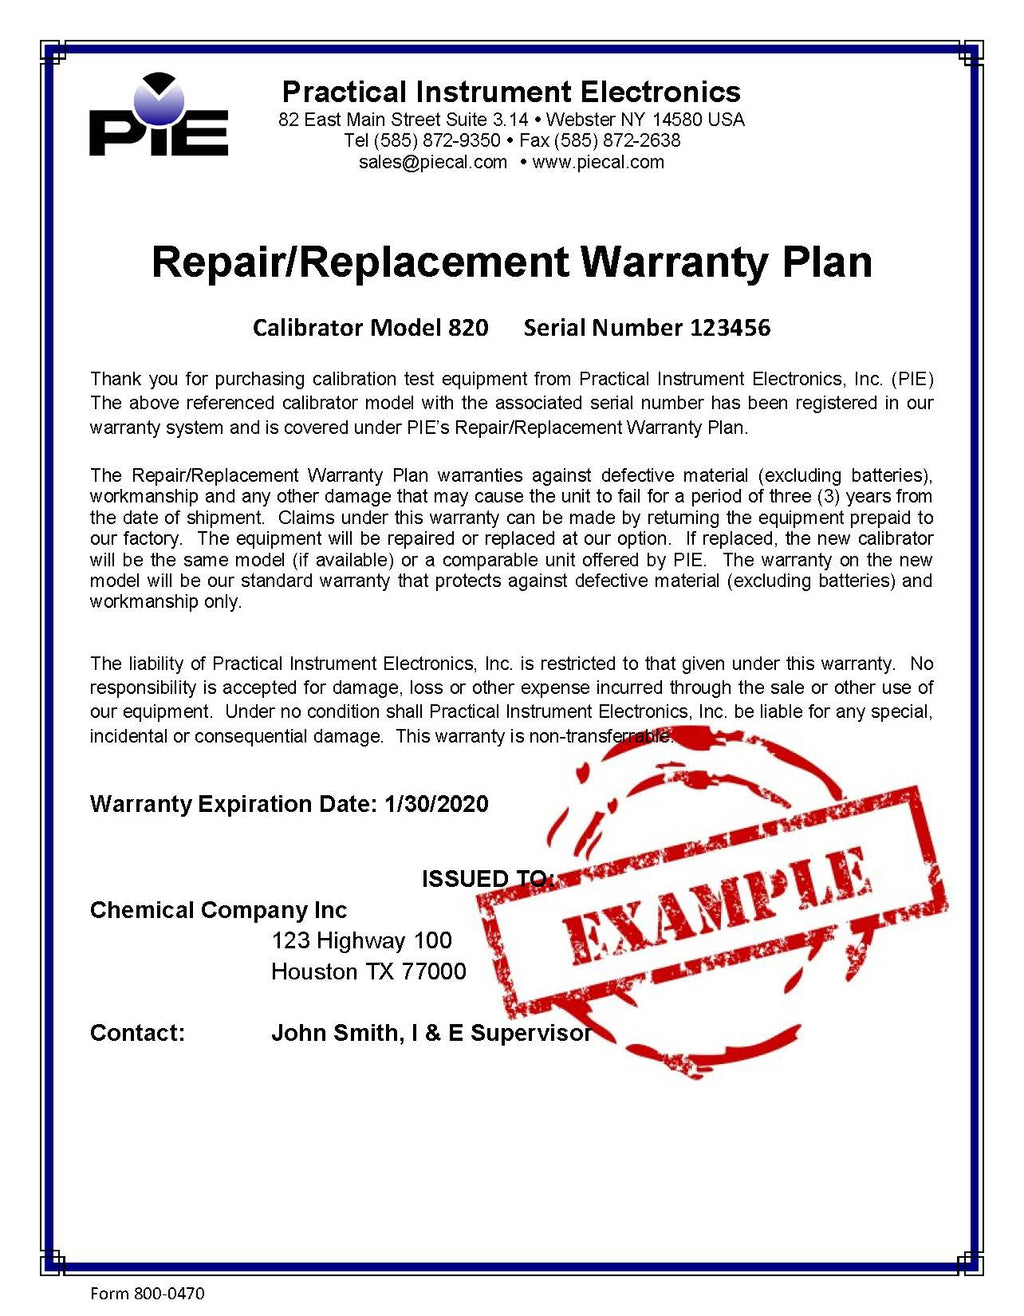 PIE 3-Year Repair/Replacement Warranty -B